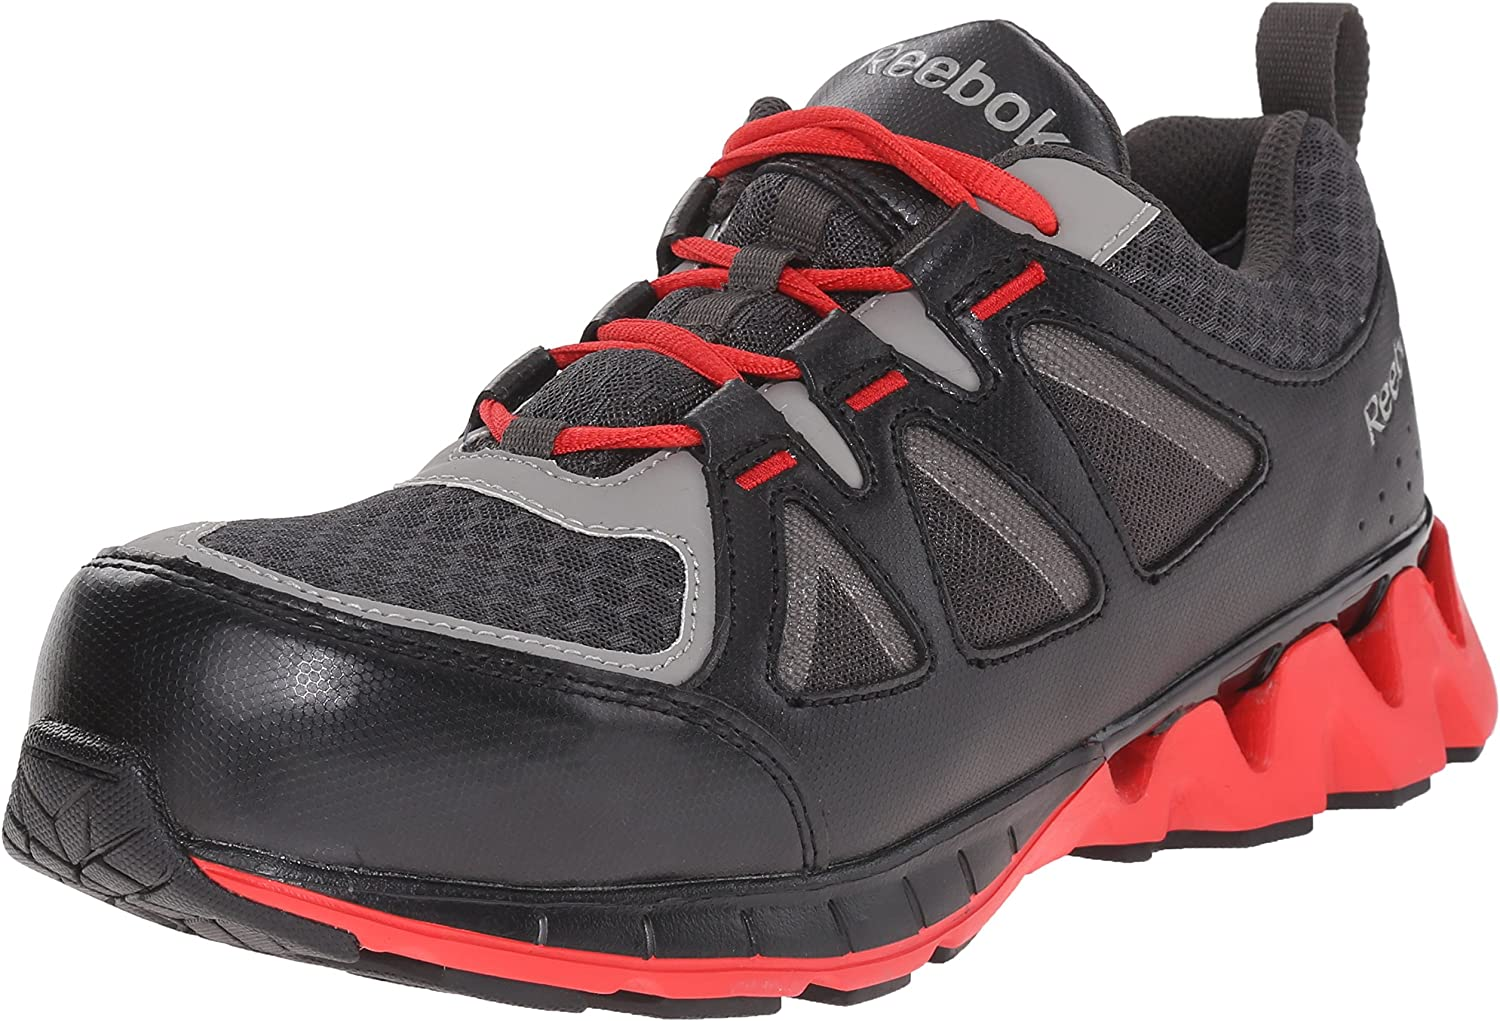 Reebok Work Men's Zigkick Work RB3000 Athletic Safety shoes